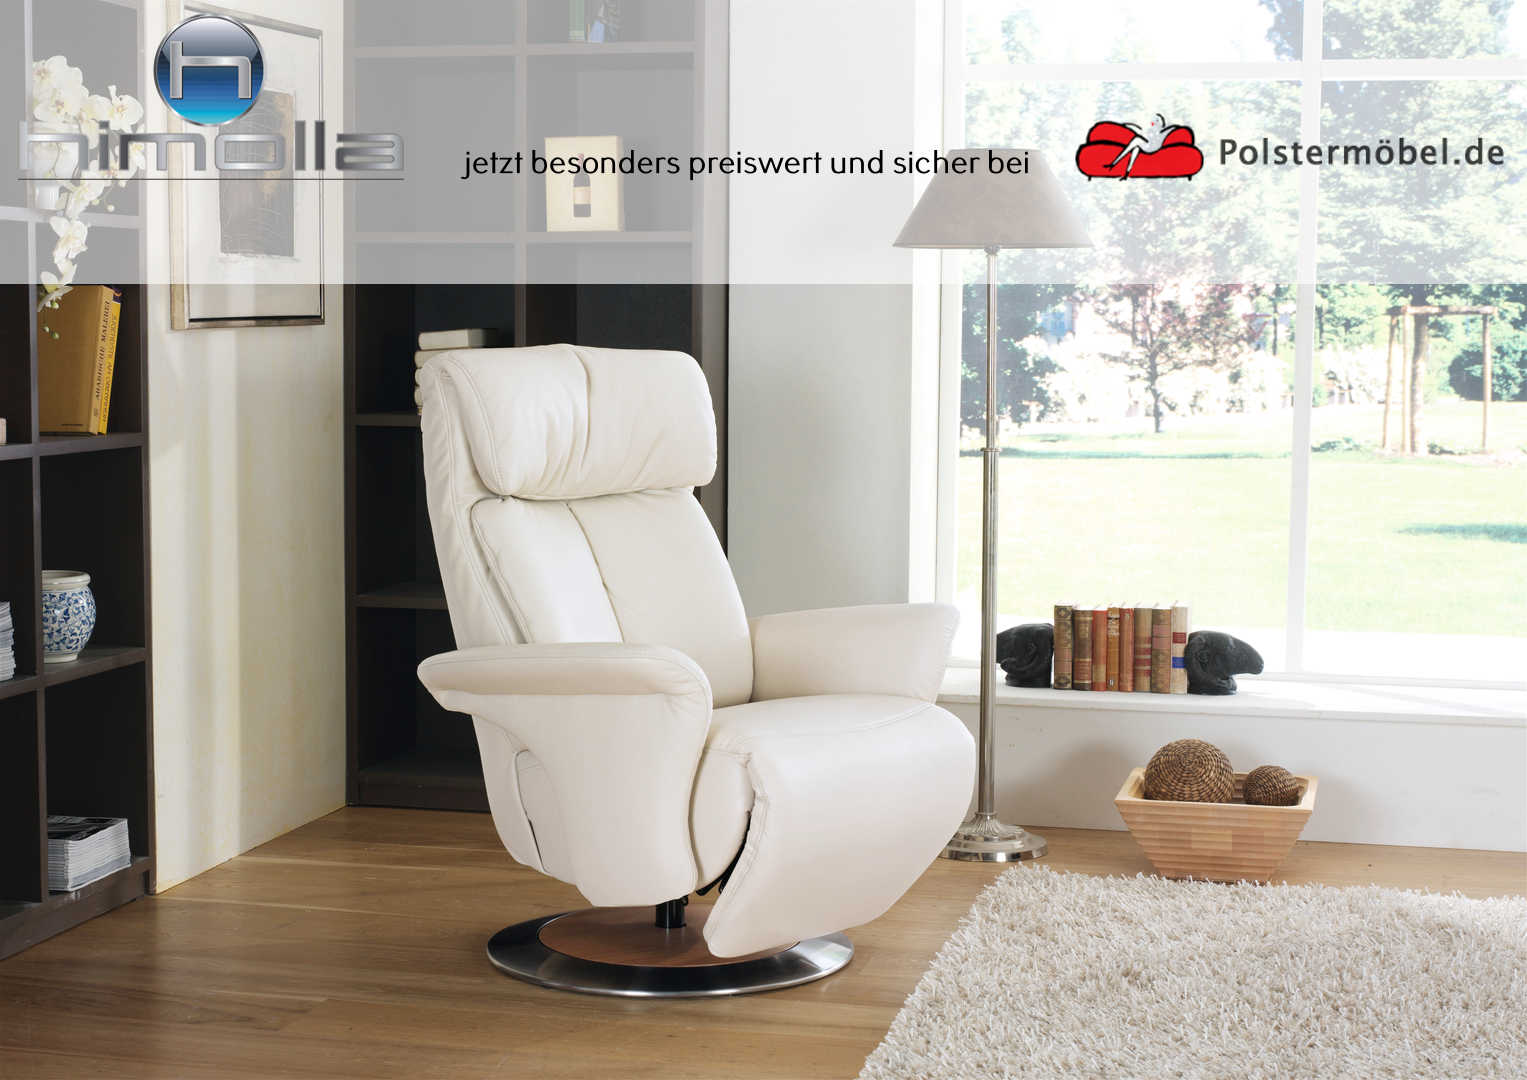 himolla easy swing polsterm bel polsterm. Black Bedroom Furniture Sets. Home Design Ideas